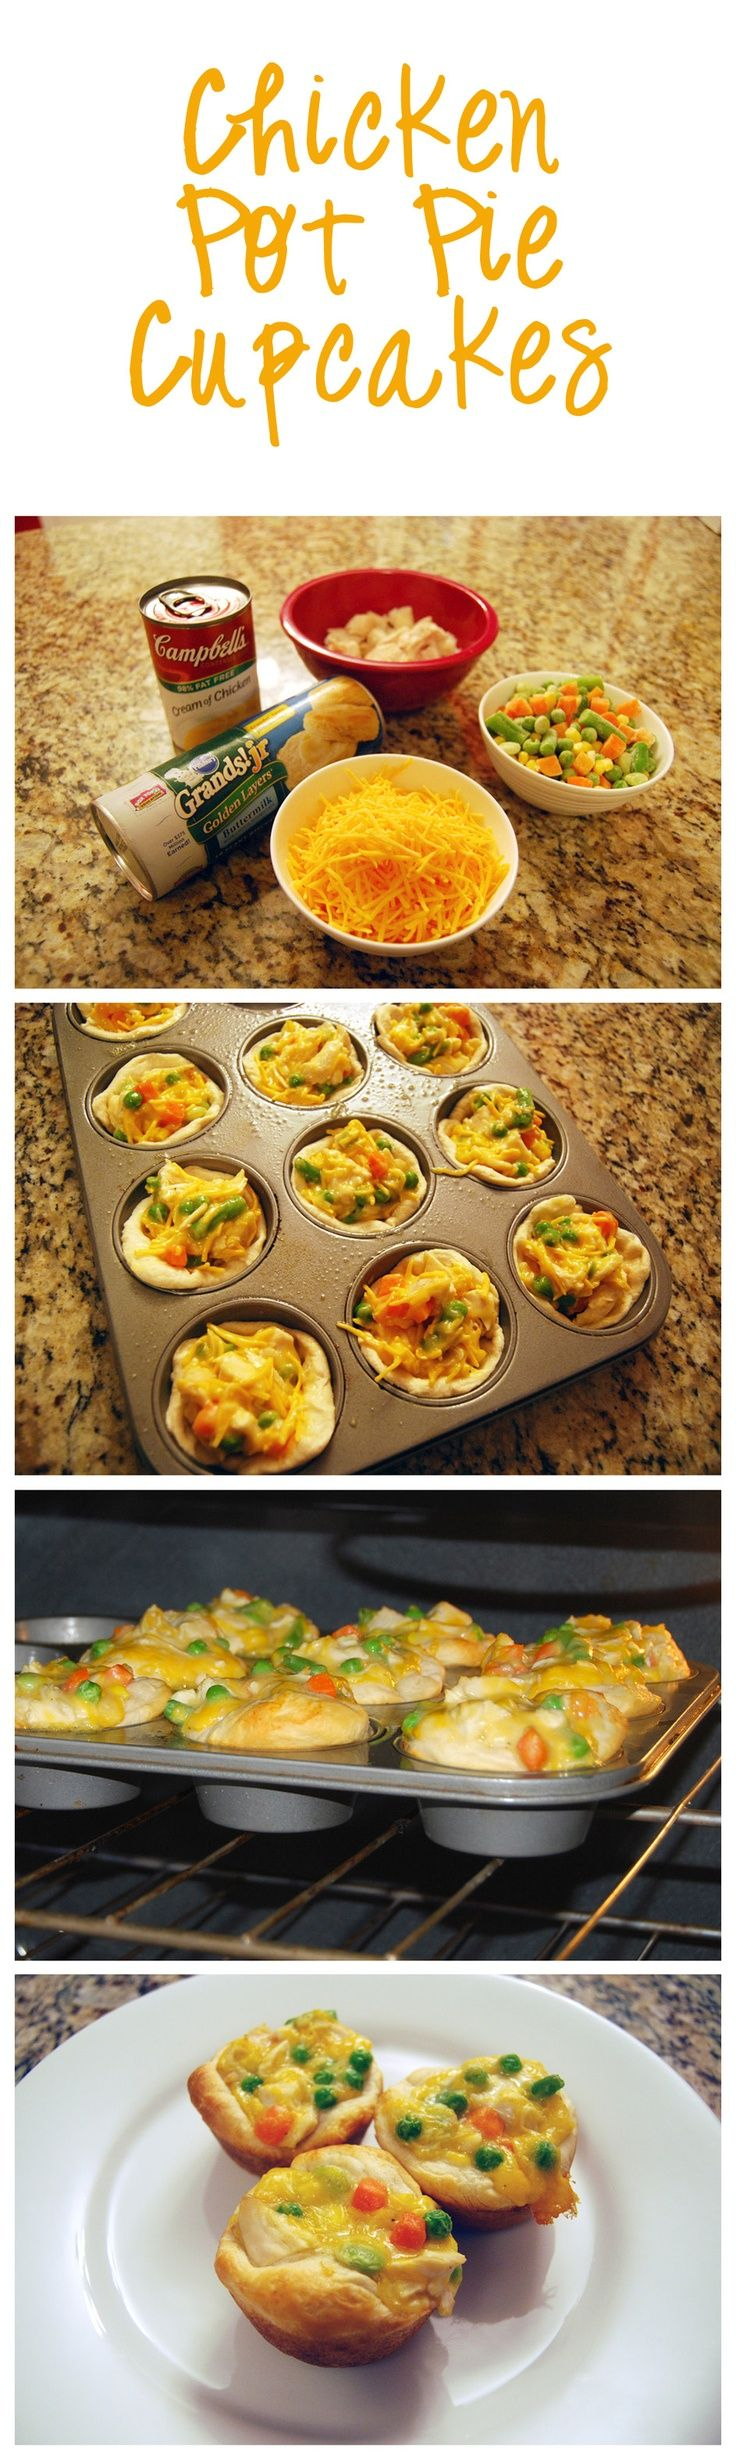 chicken pot pie minis.... except I'm gonna veganize them!